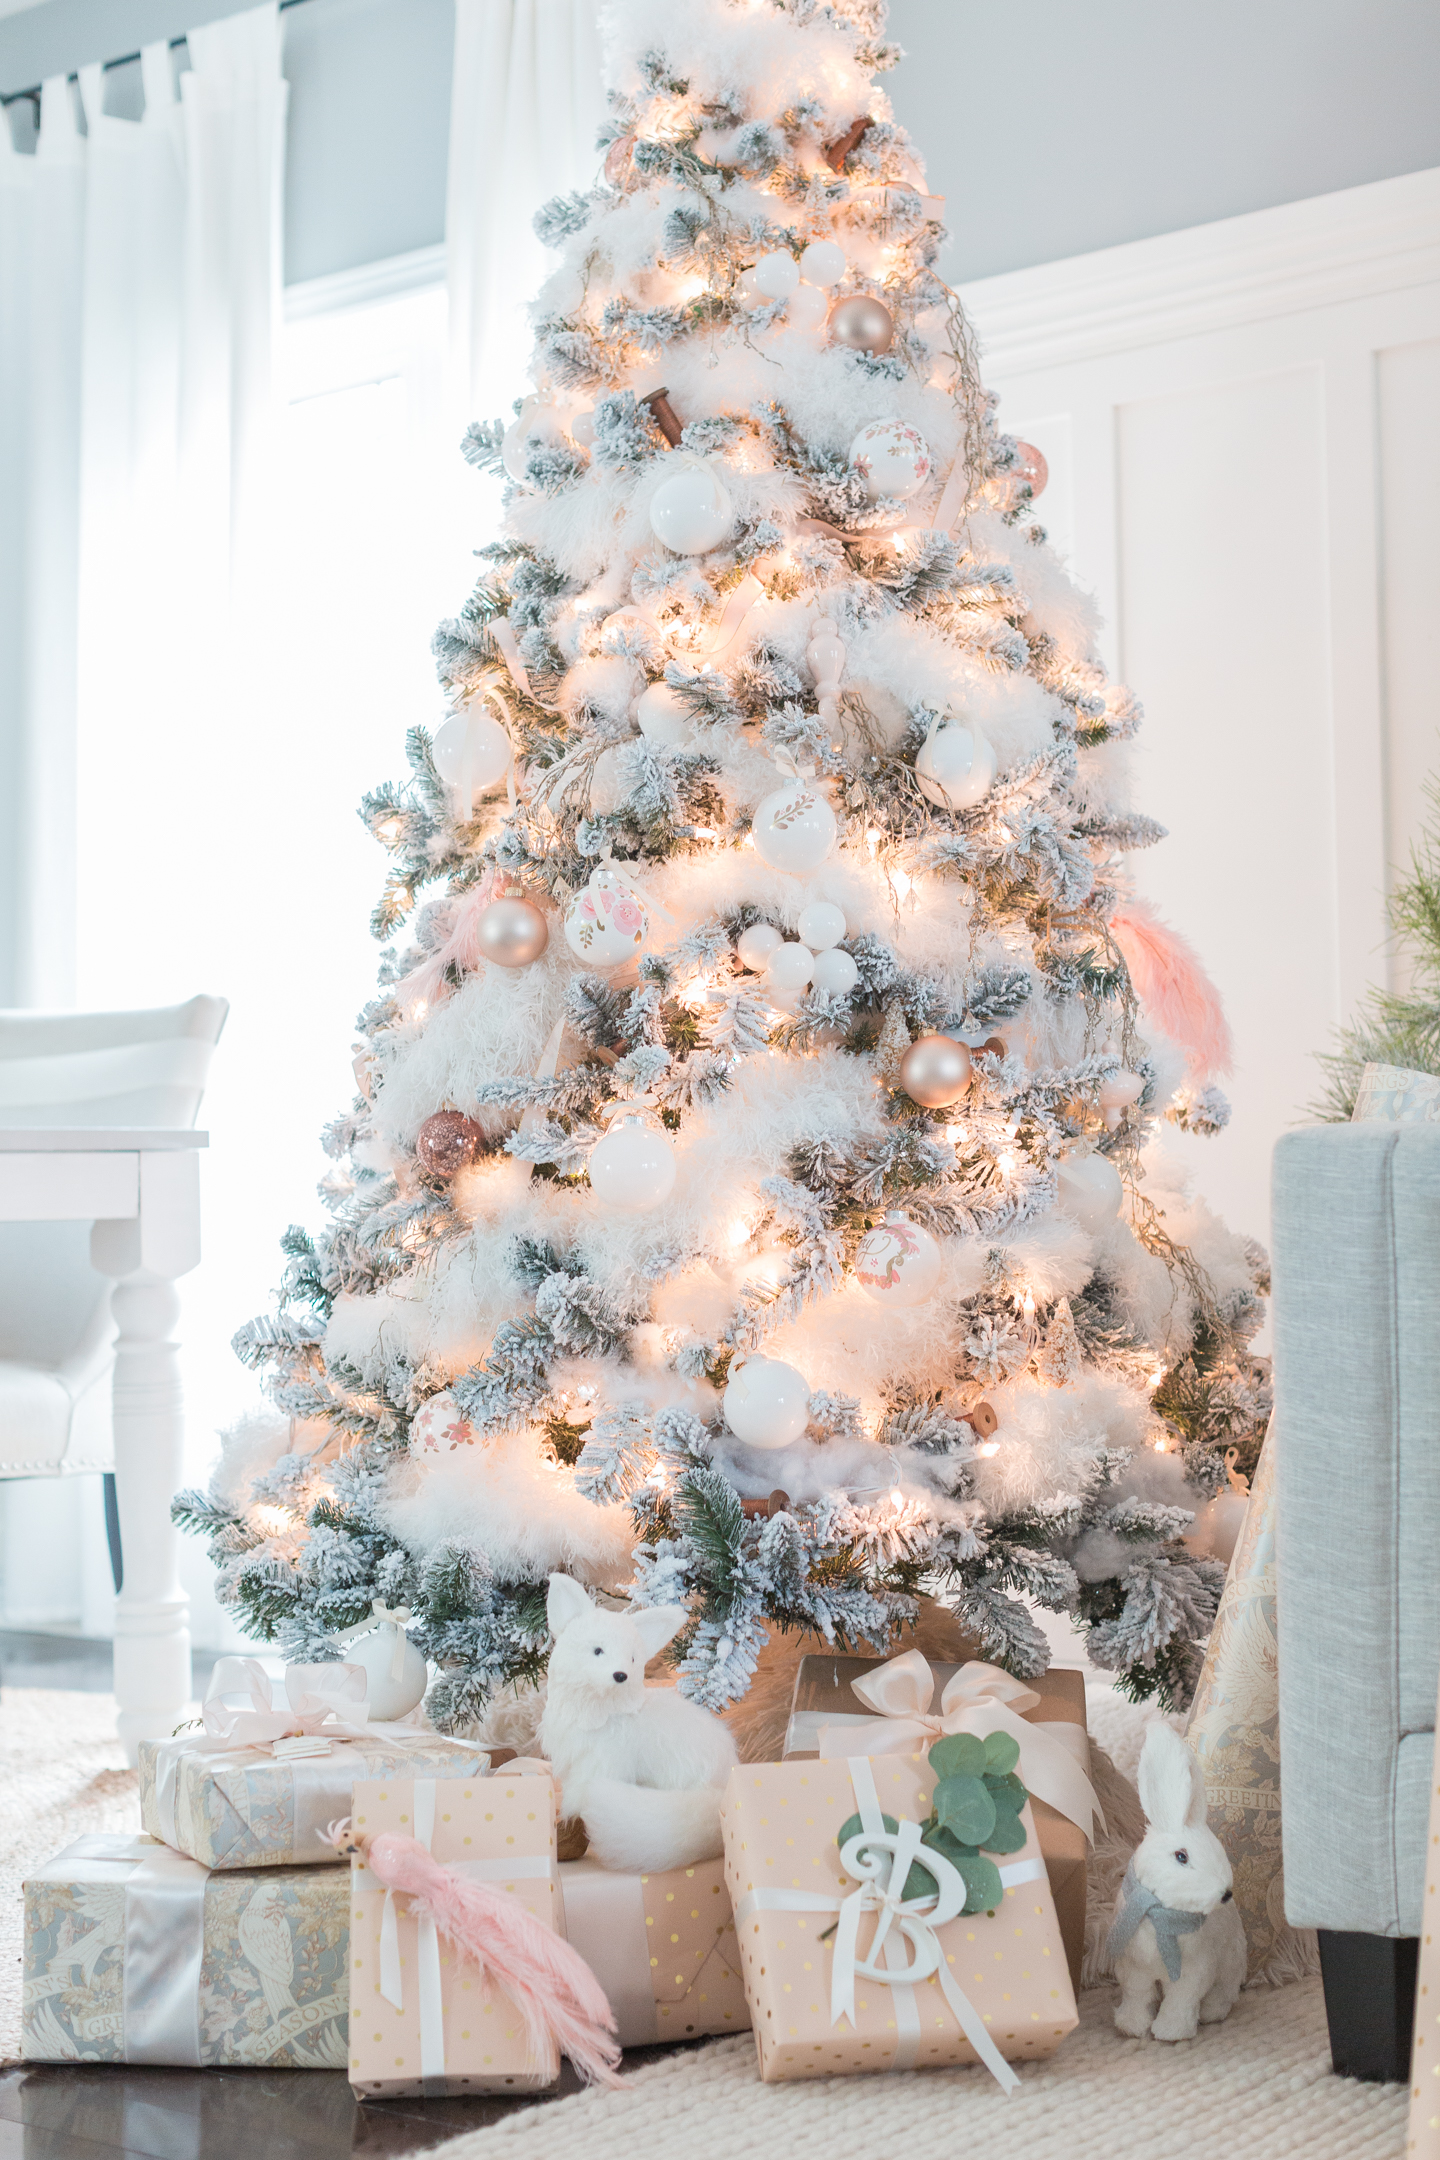 luxury christmas decorations you should be using luxury christmas decorations luxury christmas decorations you should be